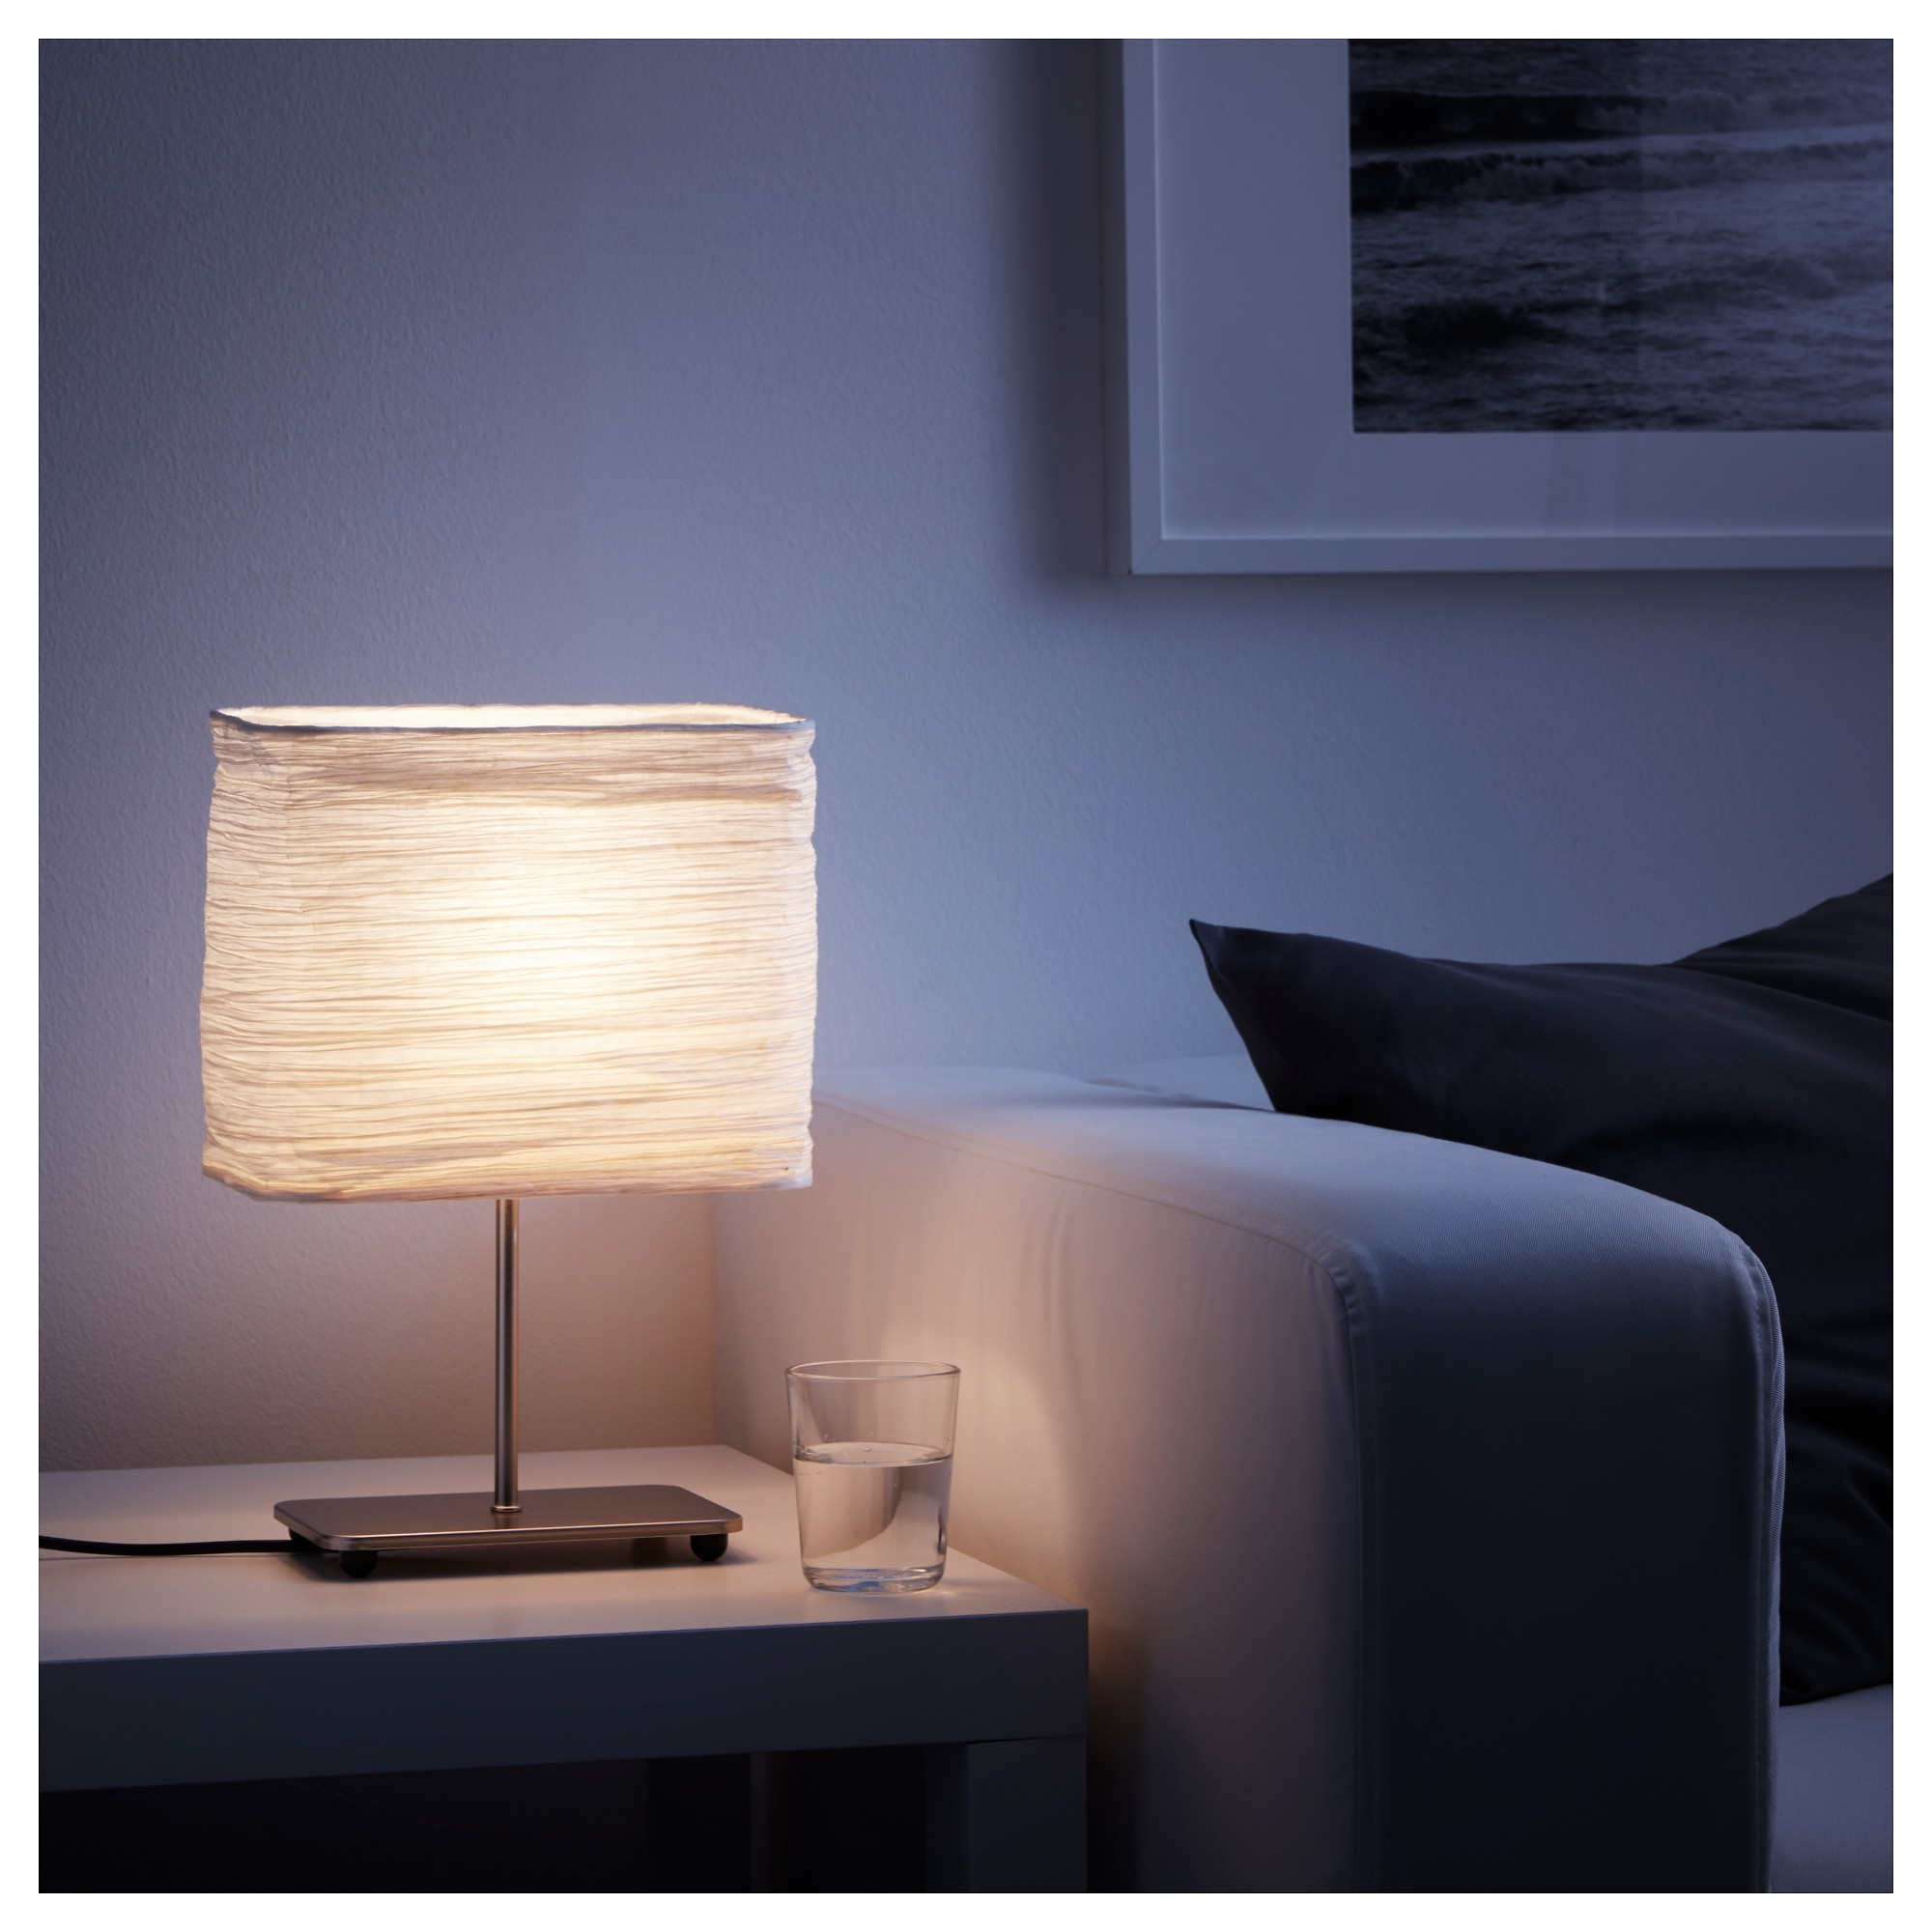 Current Nightstand: Magnarp Table Lamp Natural Nightstand Cm Ikea Art Silver Intended For Living Room Table Lamps At Ikea (View 5 of 20)